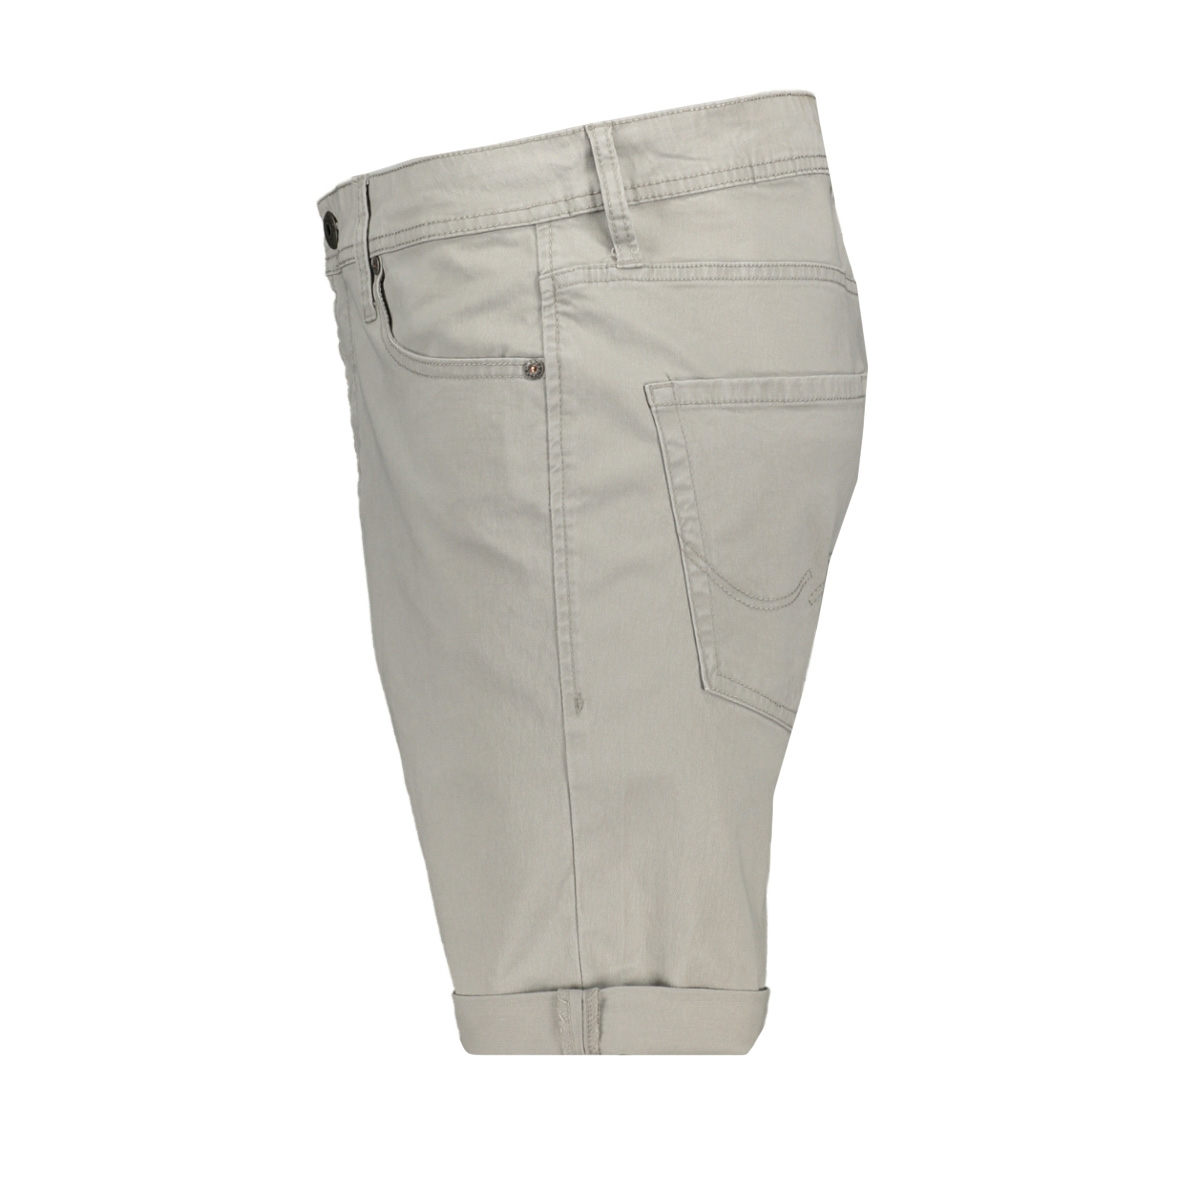 jjirick jjoriginal shorts ww 01 12146165 jack & jones korte broek limestone